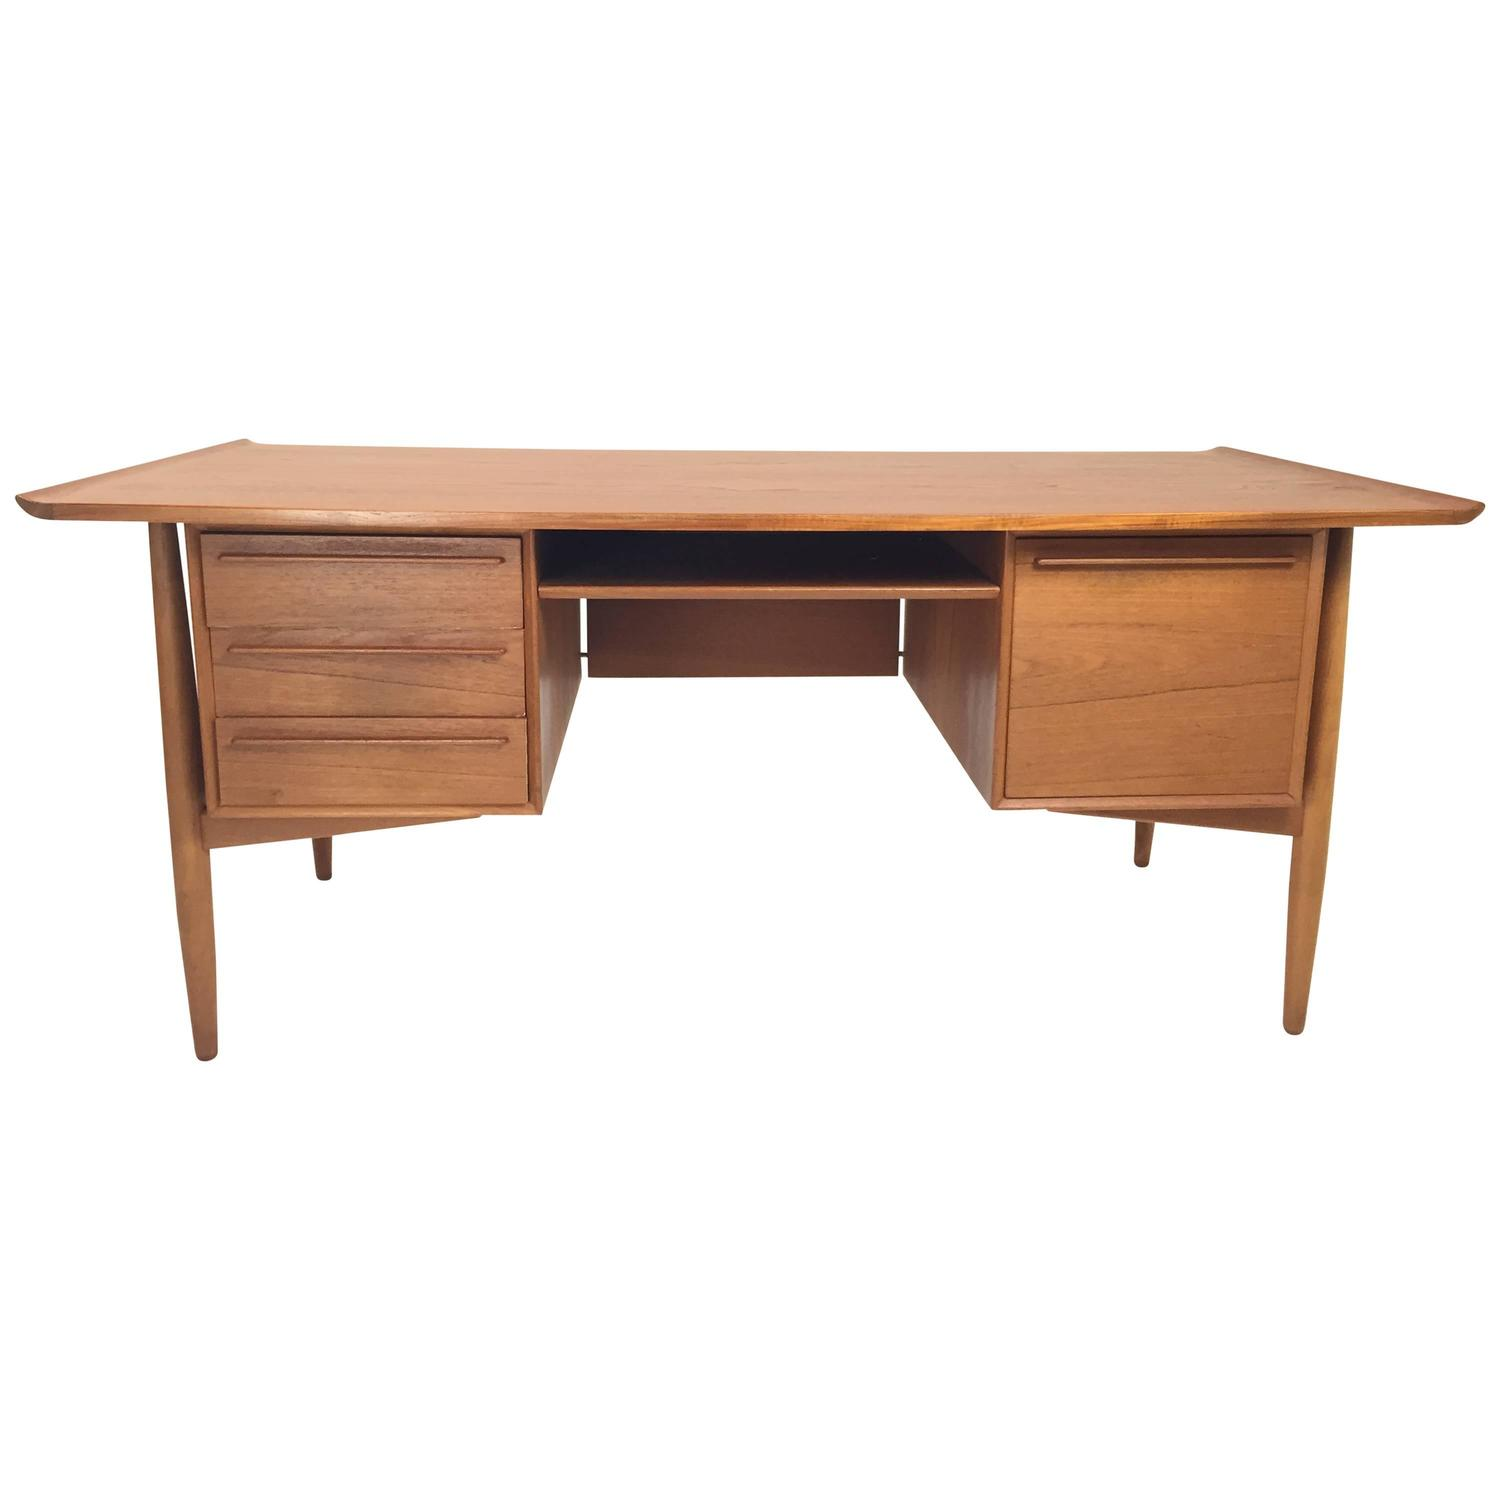 arne vodder danish teak desk at 1stdibs. Black Bedroom Furniture Sets. Home Design Ideas